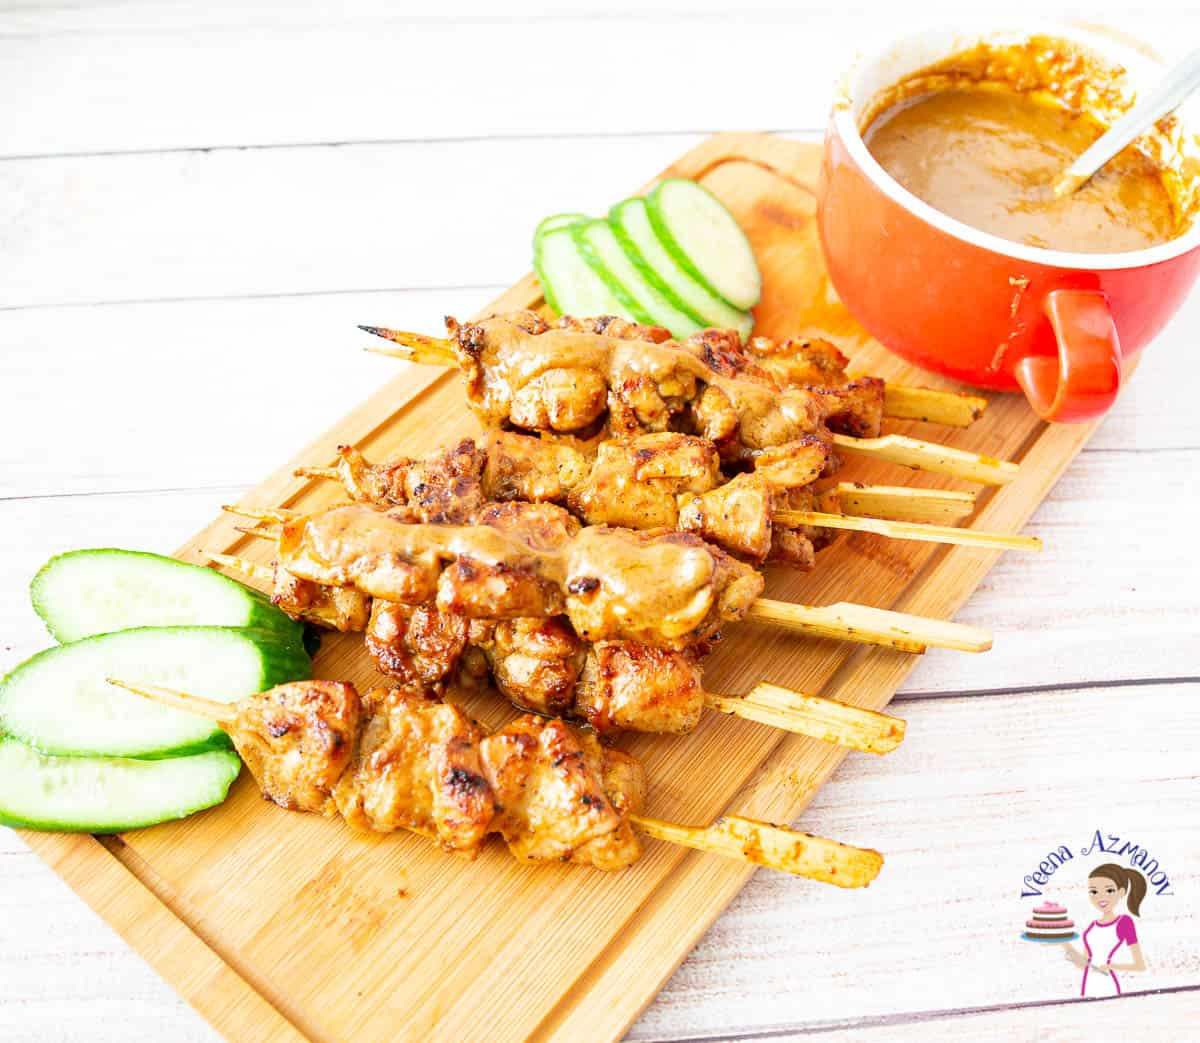 A stack of chicken satay skewers on a wooden tray with sliced cucumbers and a bowl of peanut sauce.